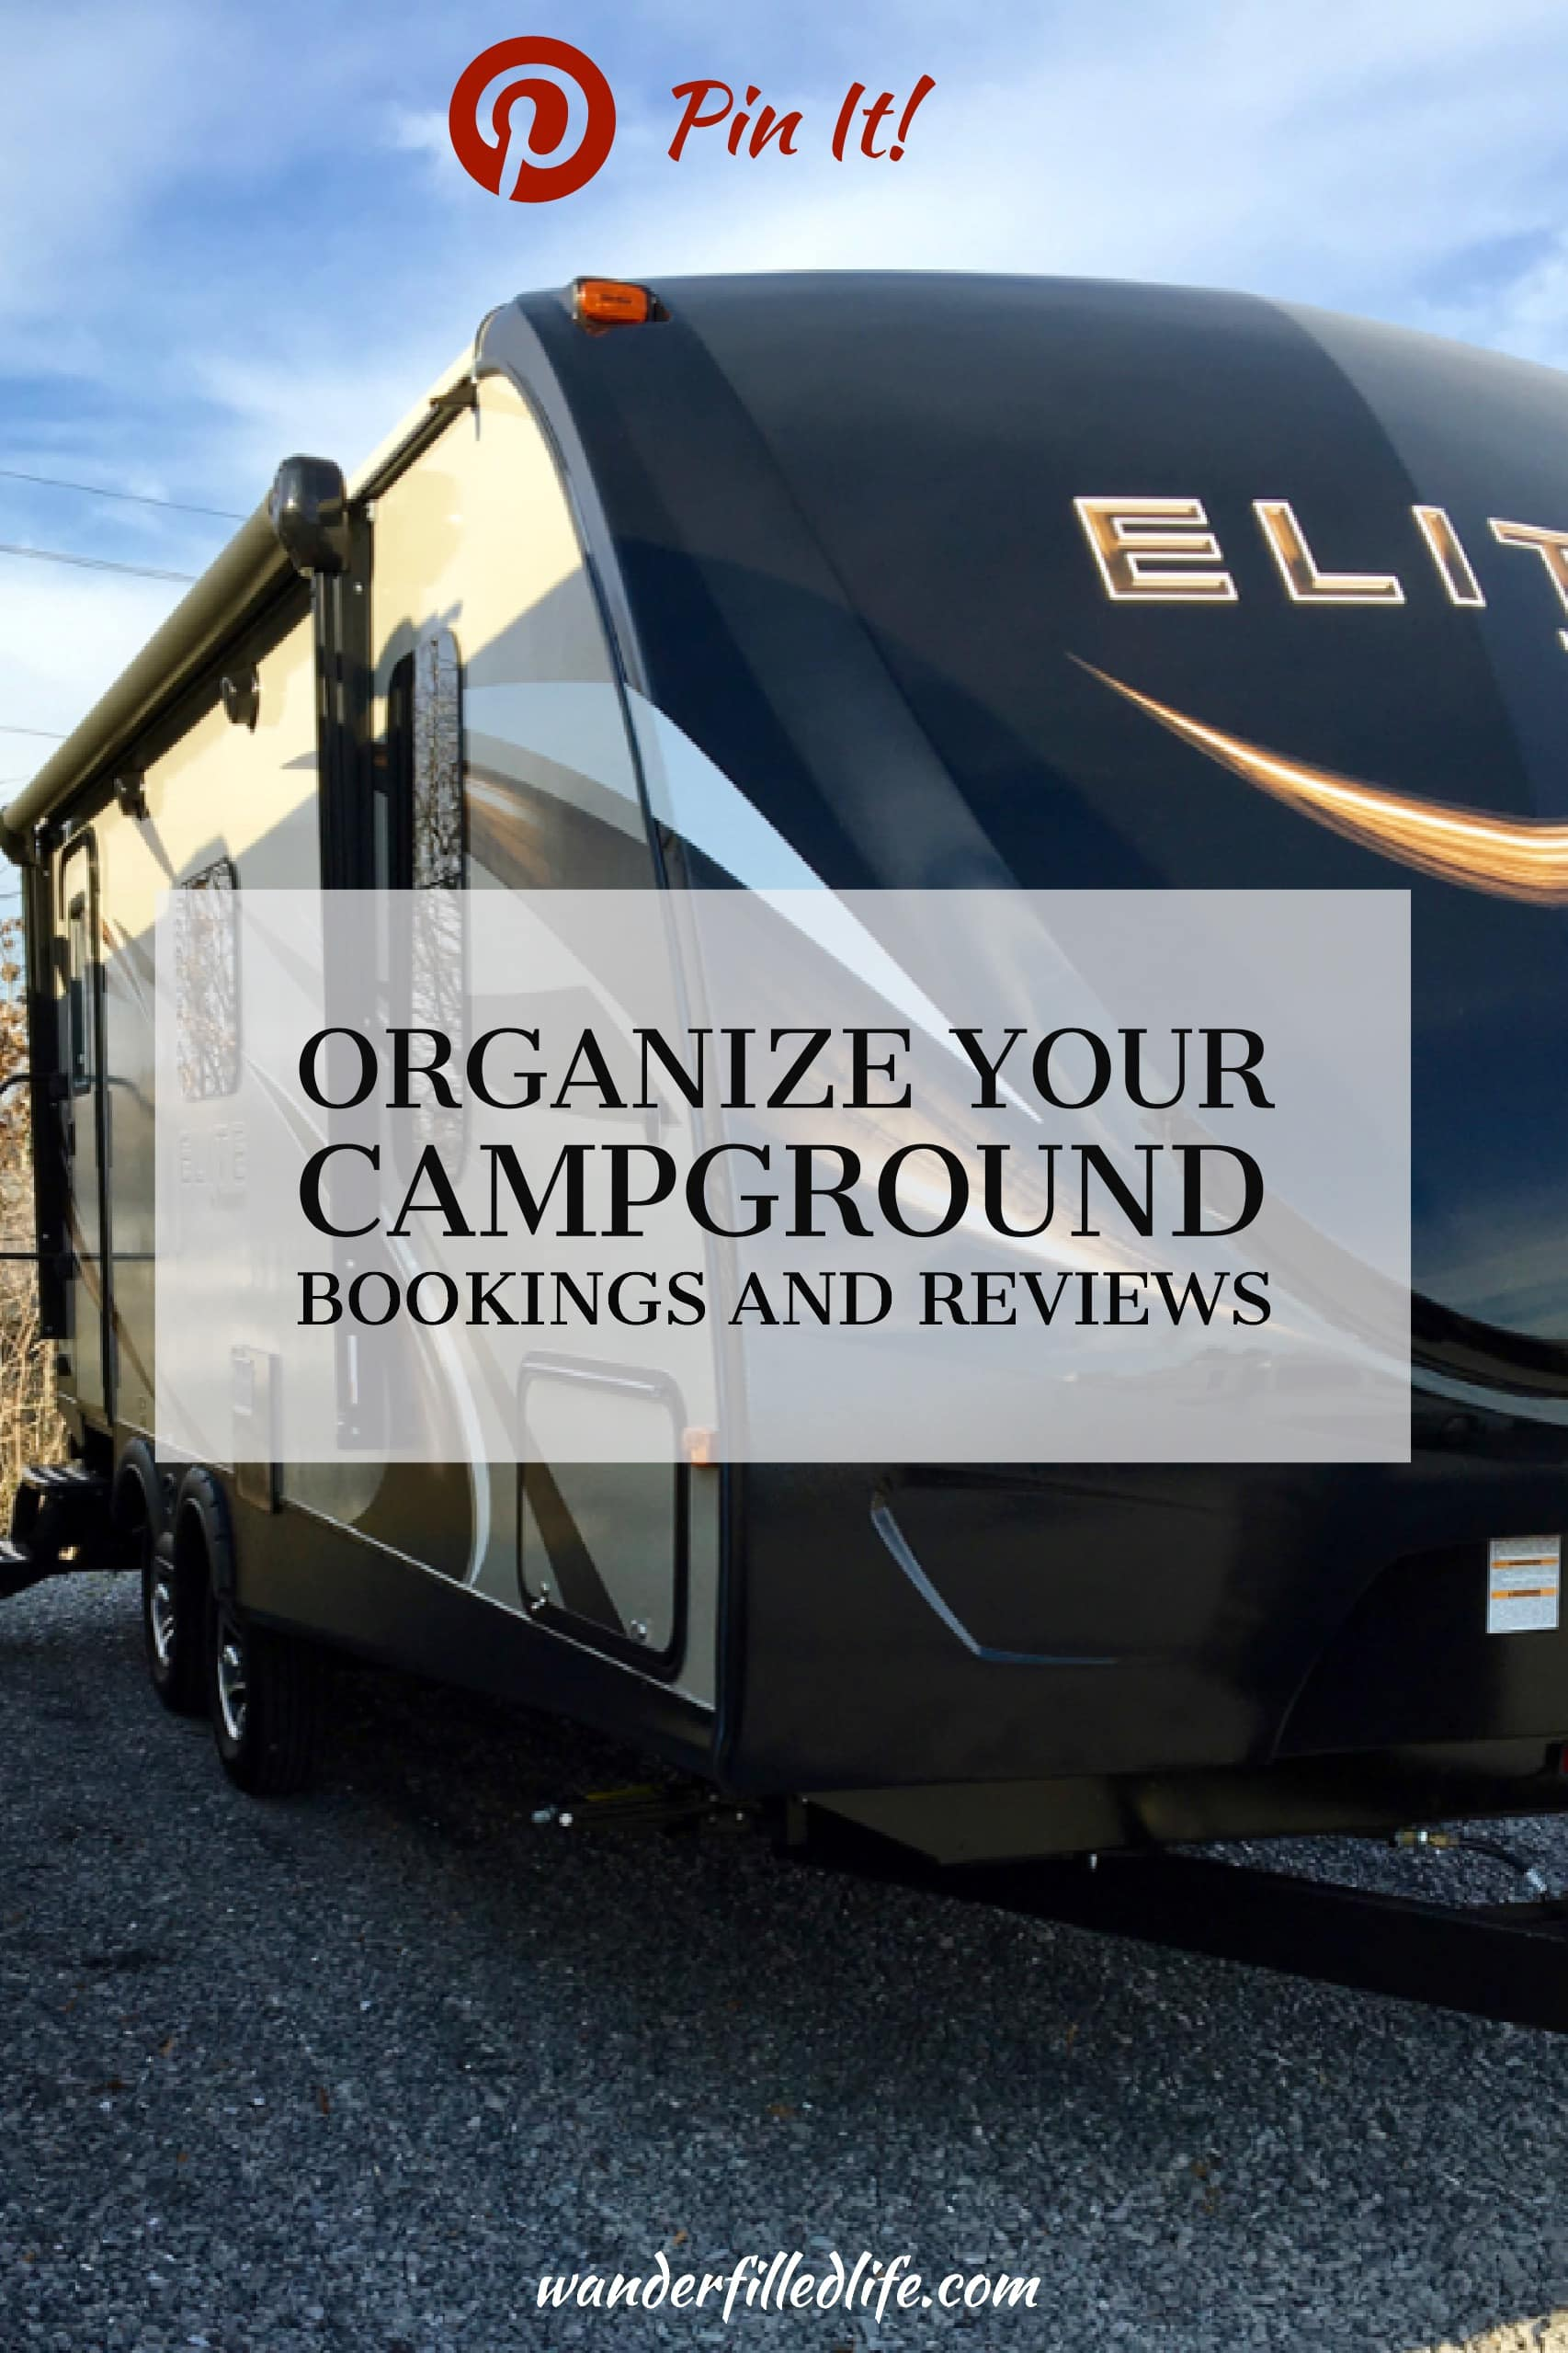 Keeping your campground bookings organized, especially on long road trips, is essential. We have created free forms to help you out.